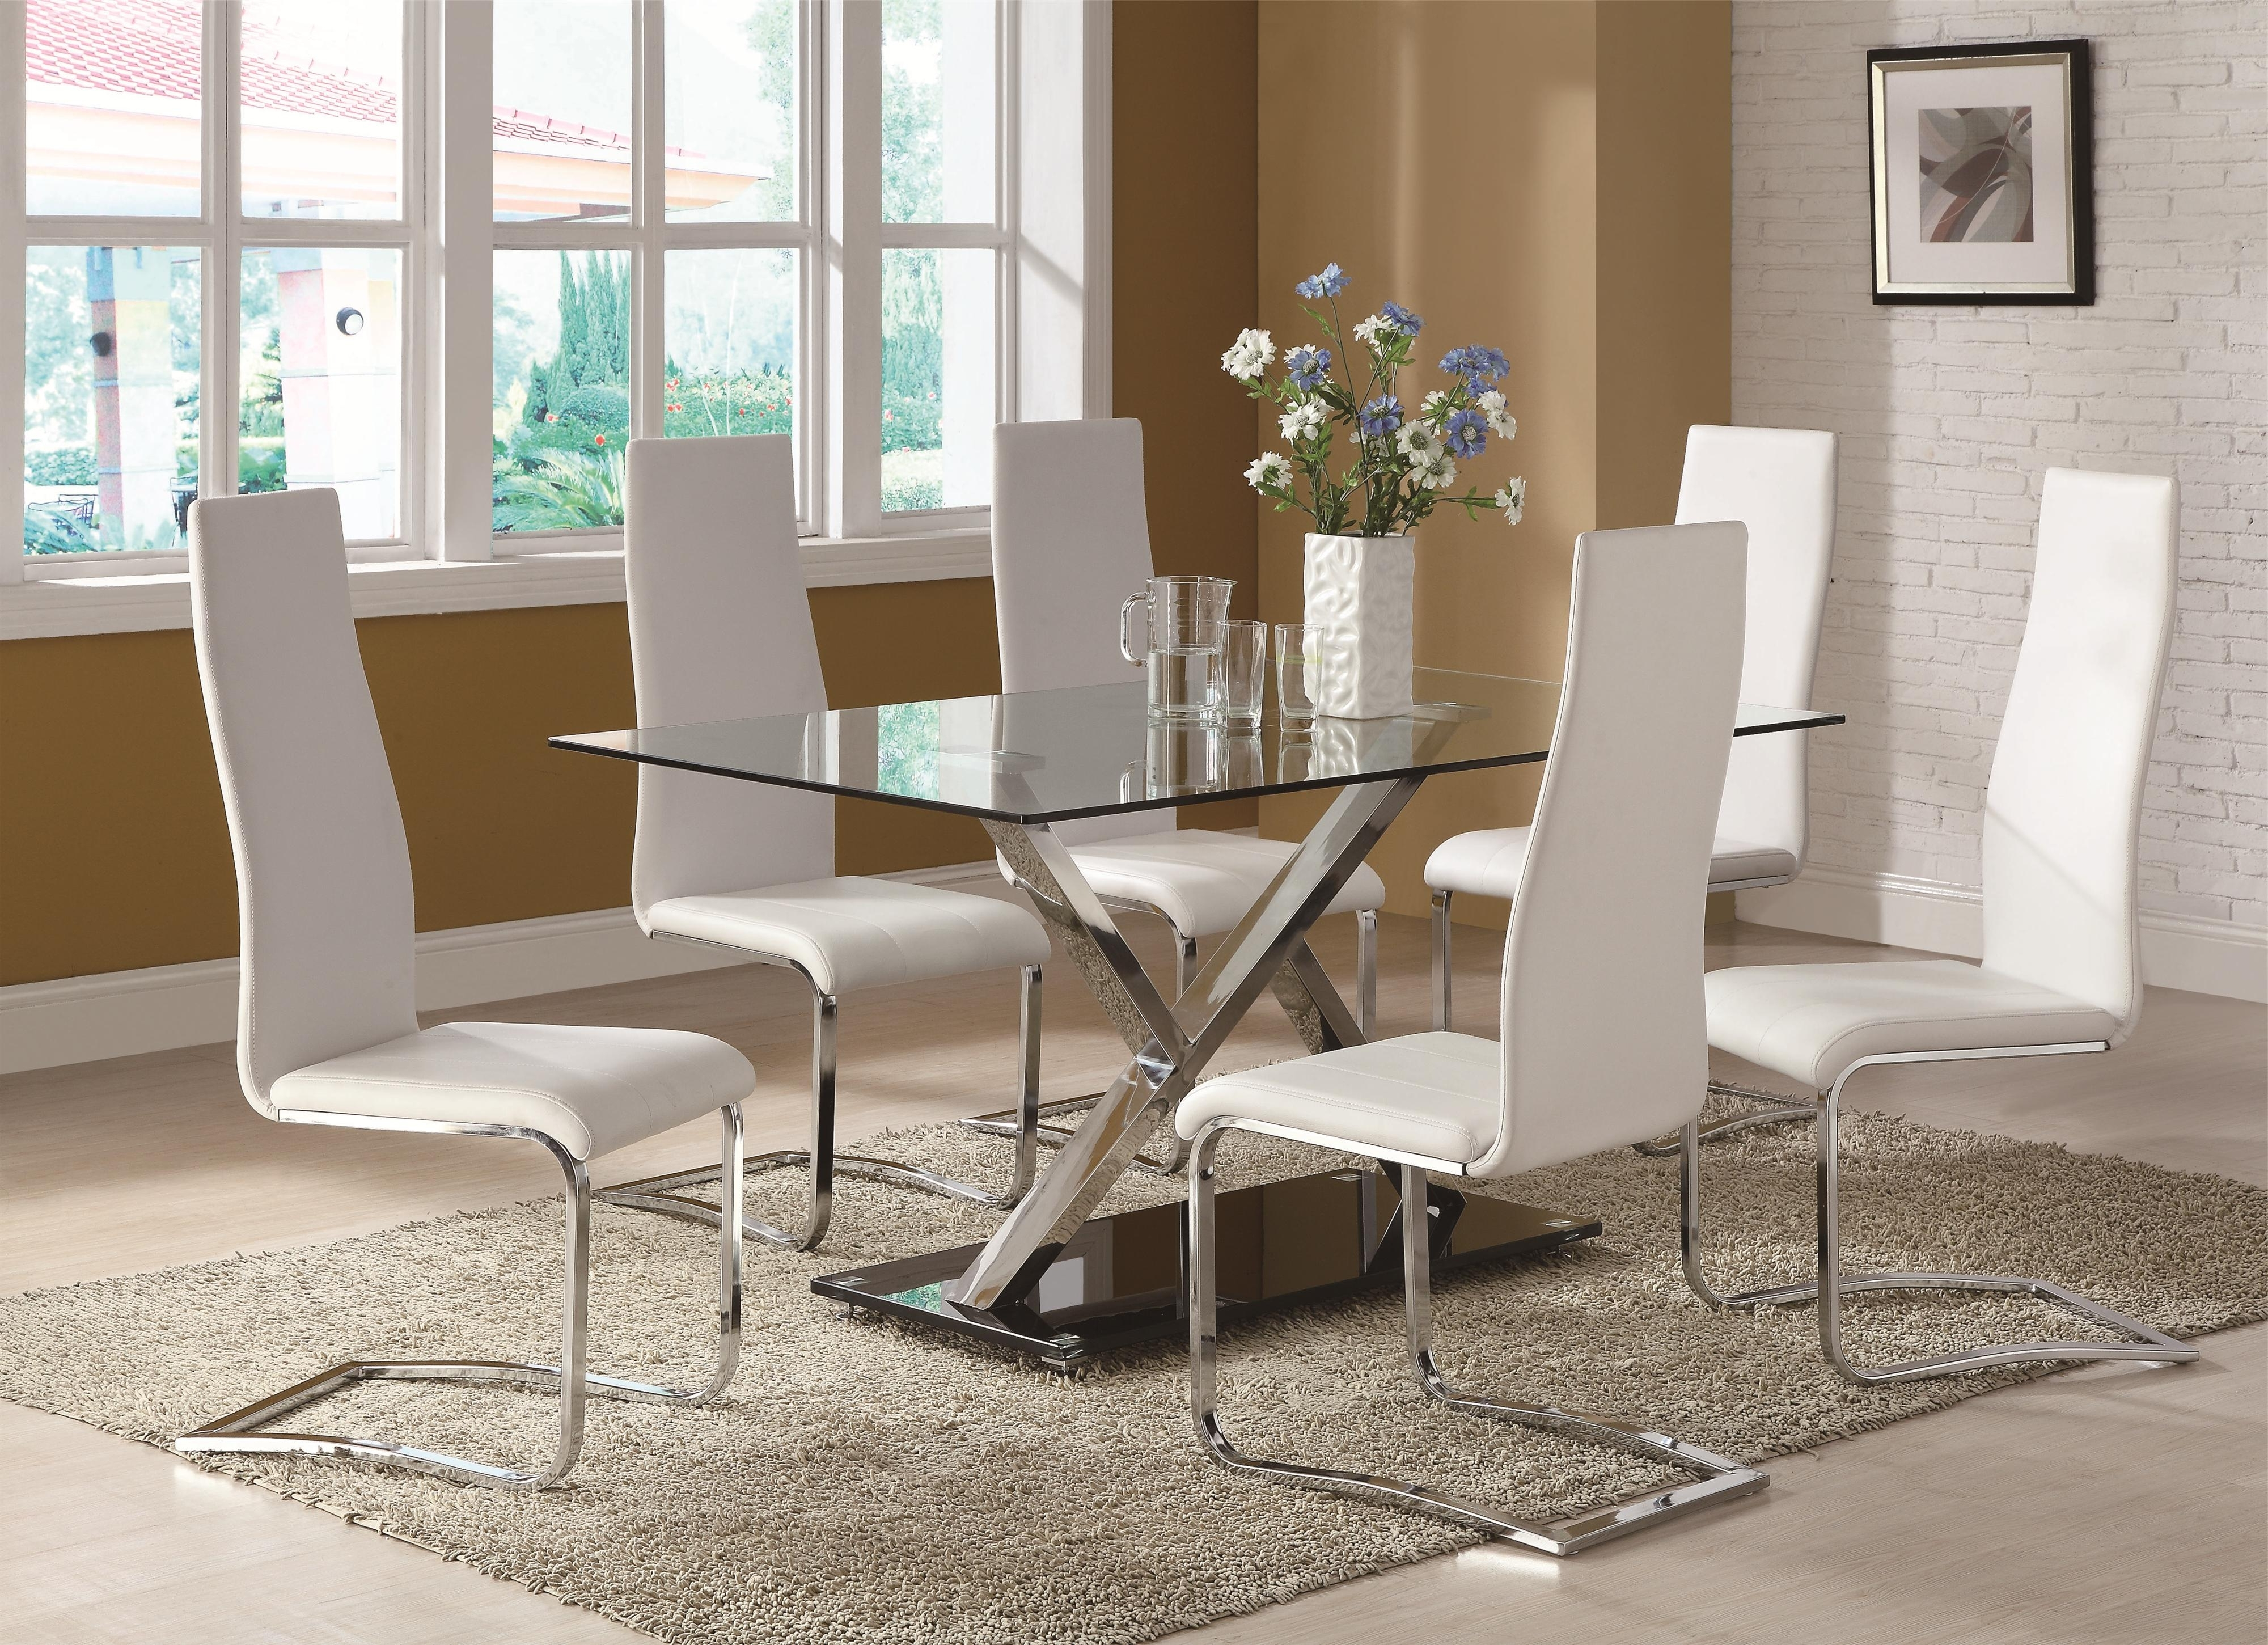 Coaster Modern Dining Contemporary Dining Room Set (Gallery 7 of 25)